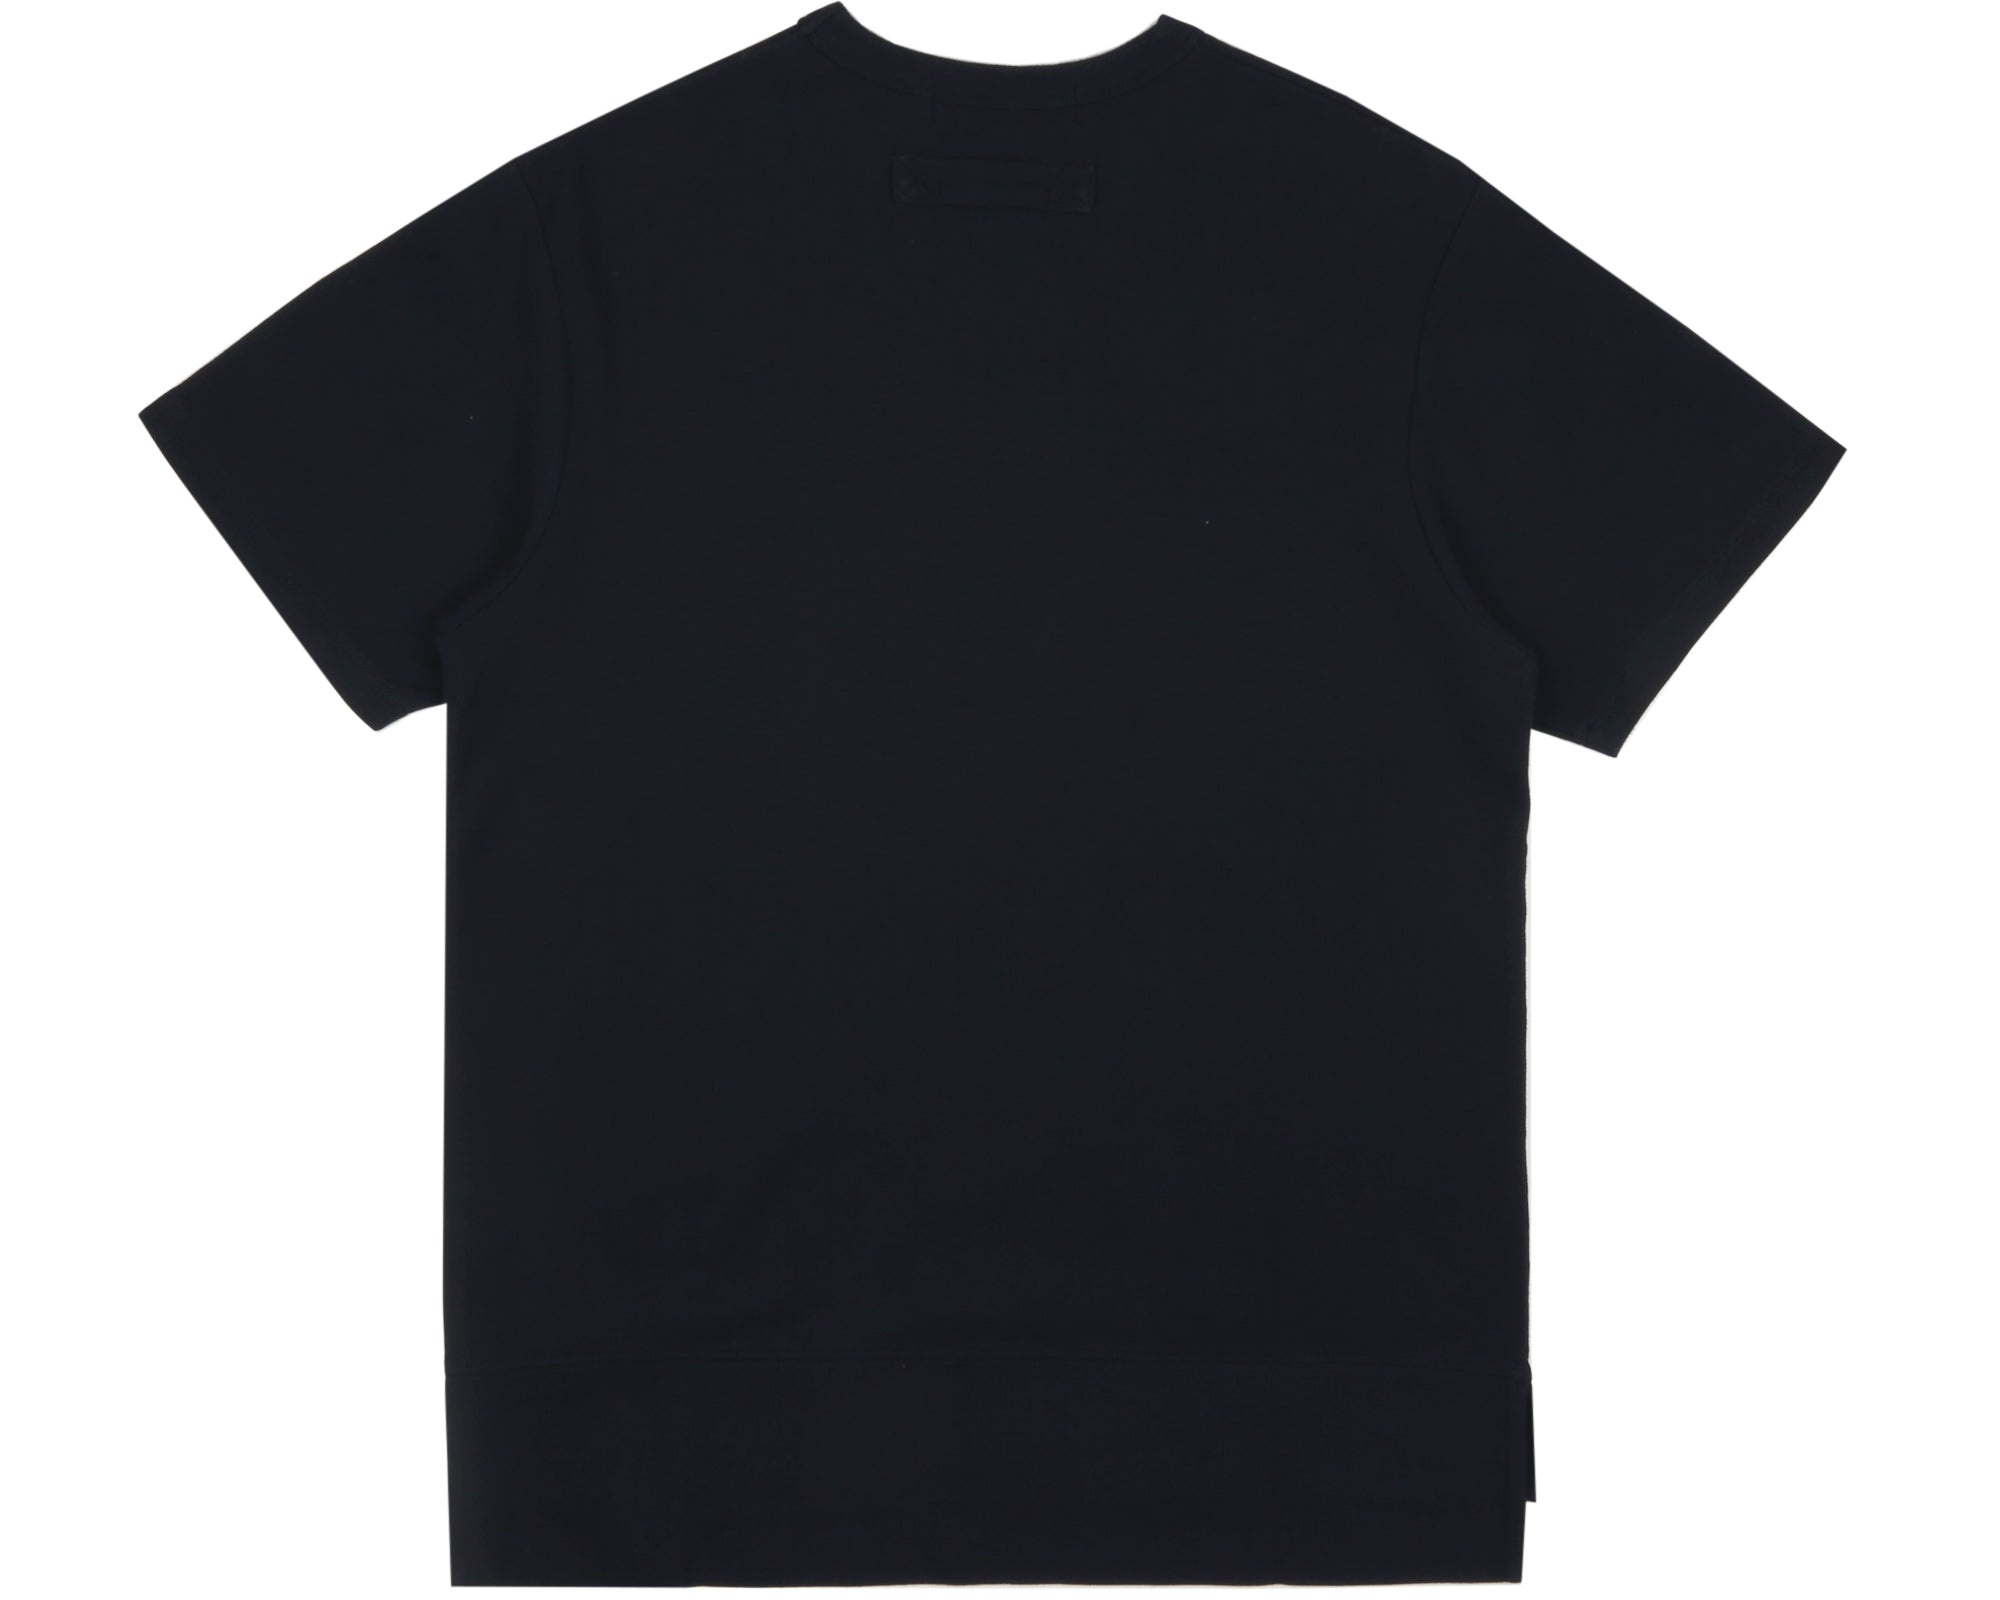 HEAVY PIQUE COTTON T-SHIRT - NAVY